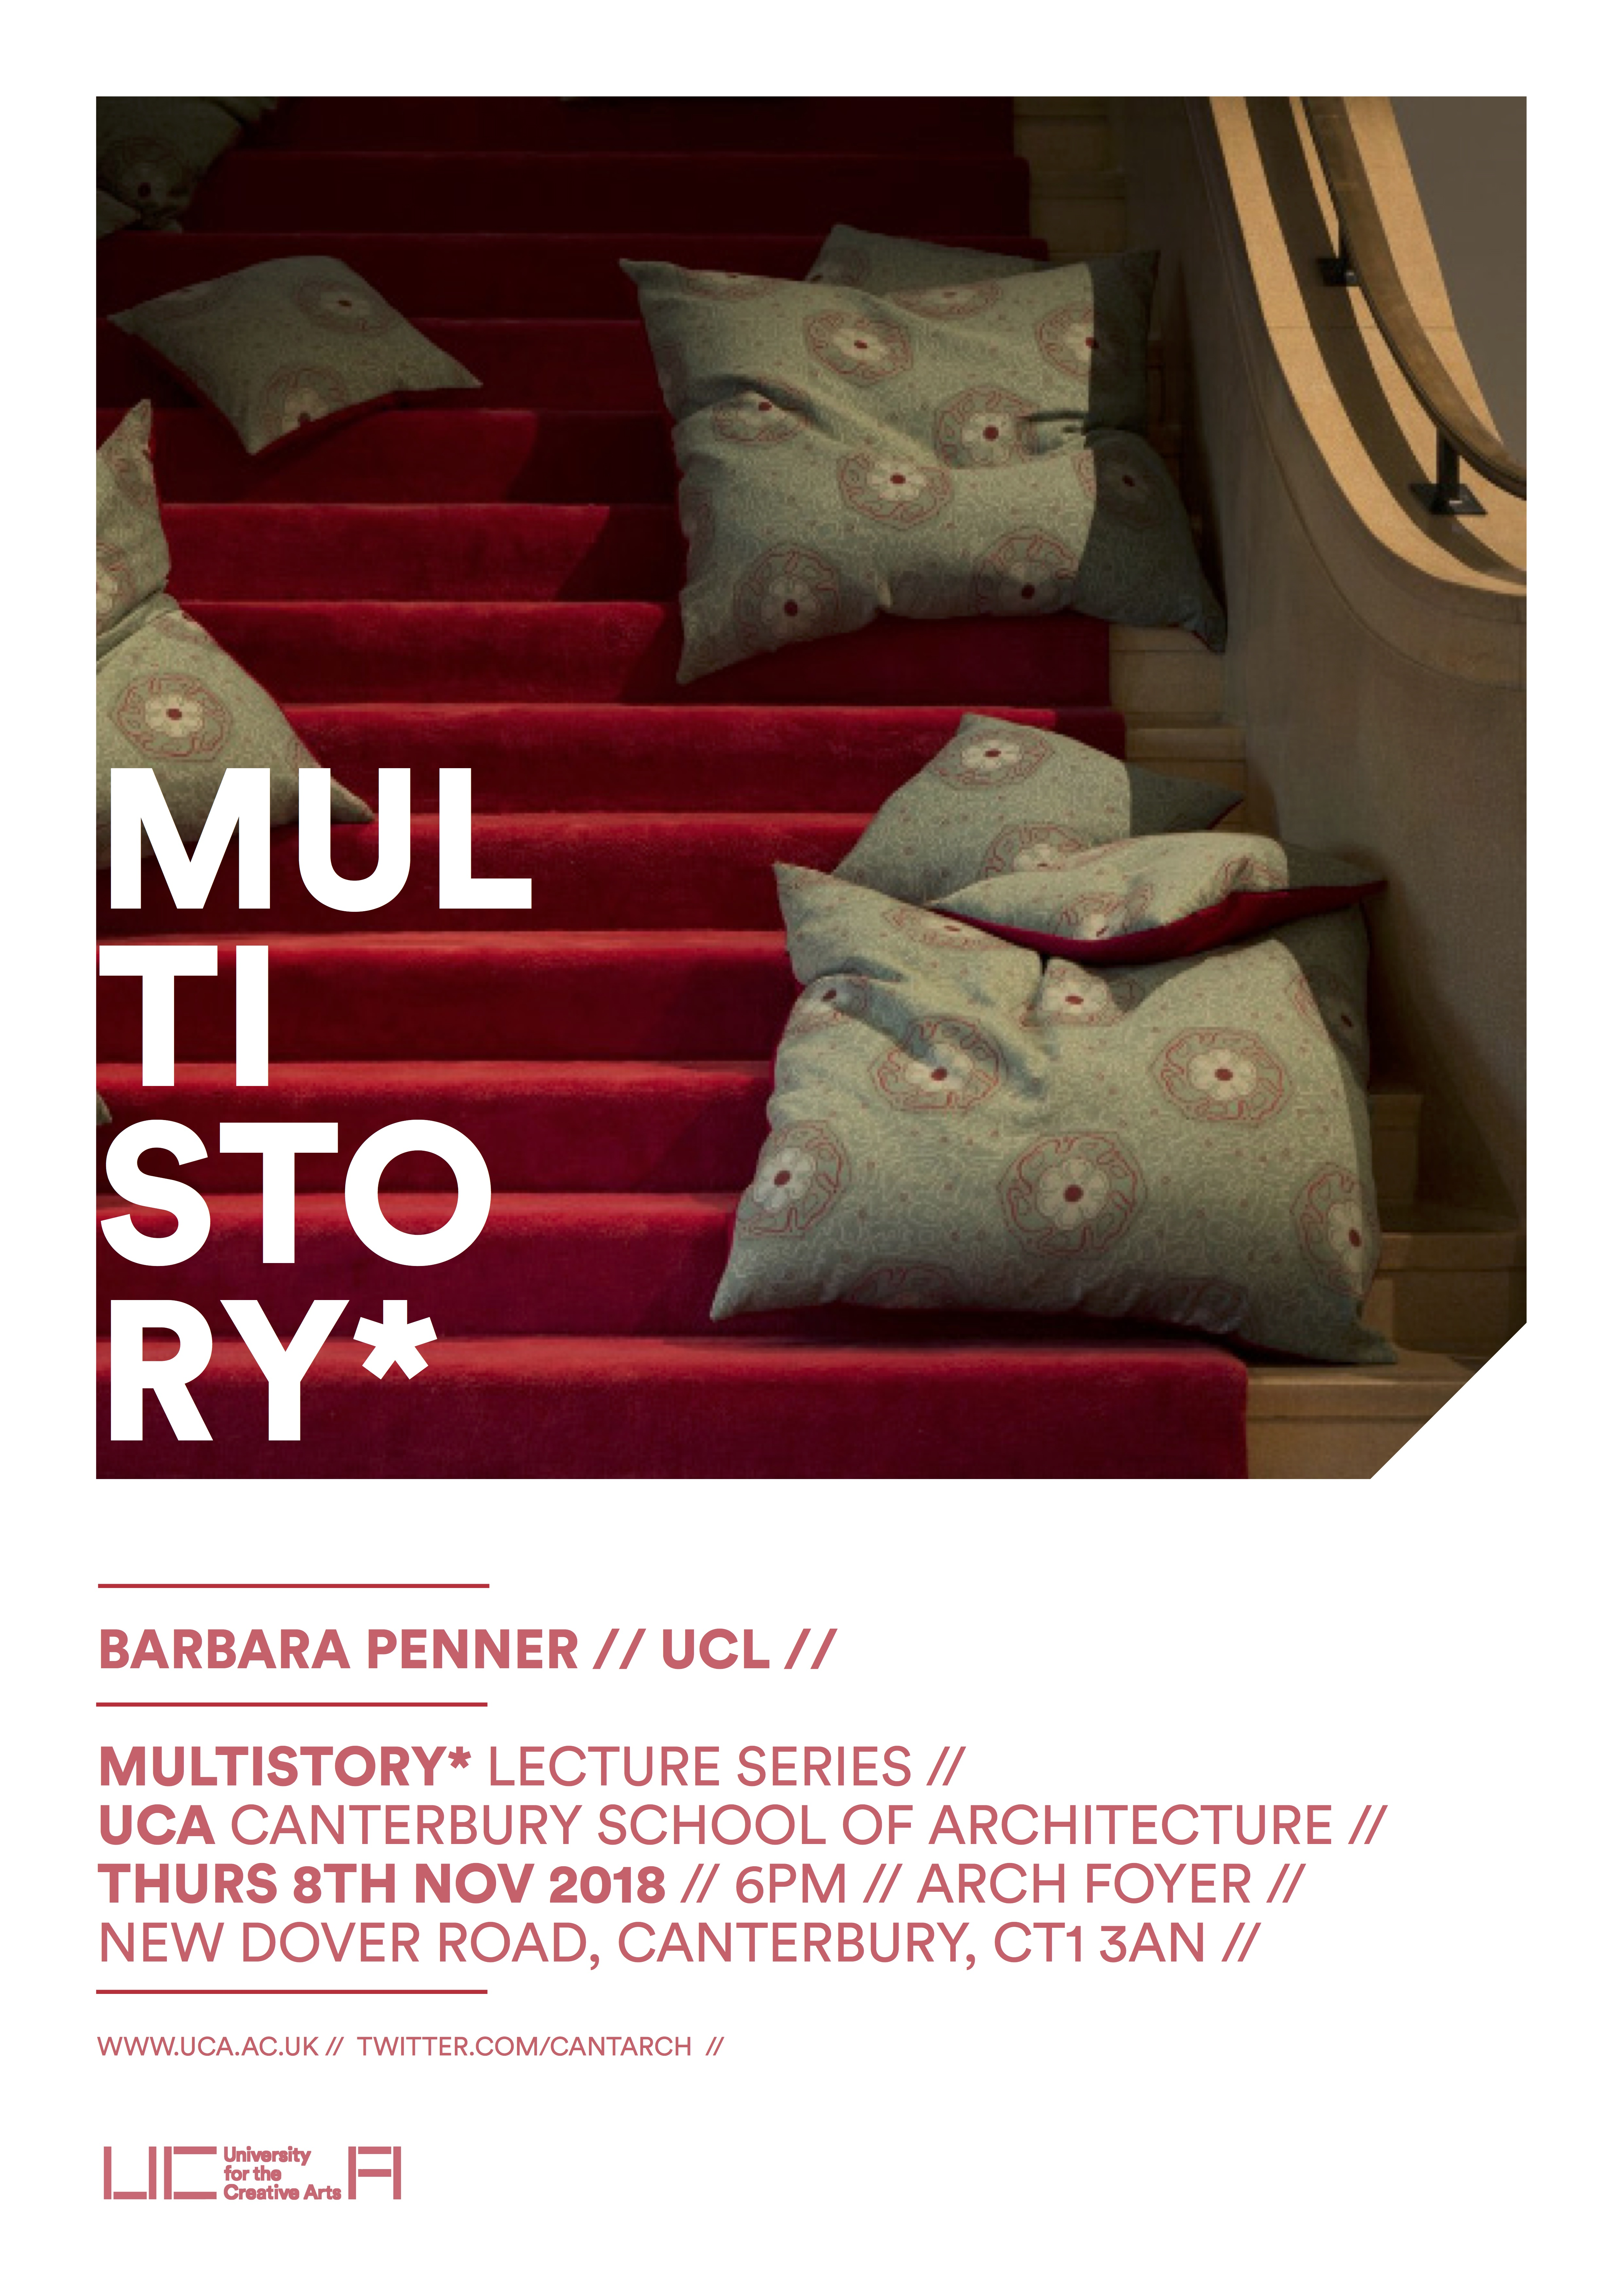 Multistory guest lecture prof barbara penner thursday 8th november 6pm